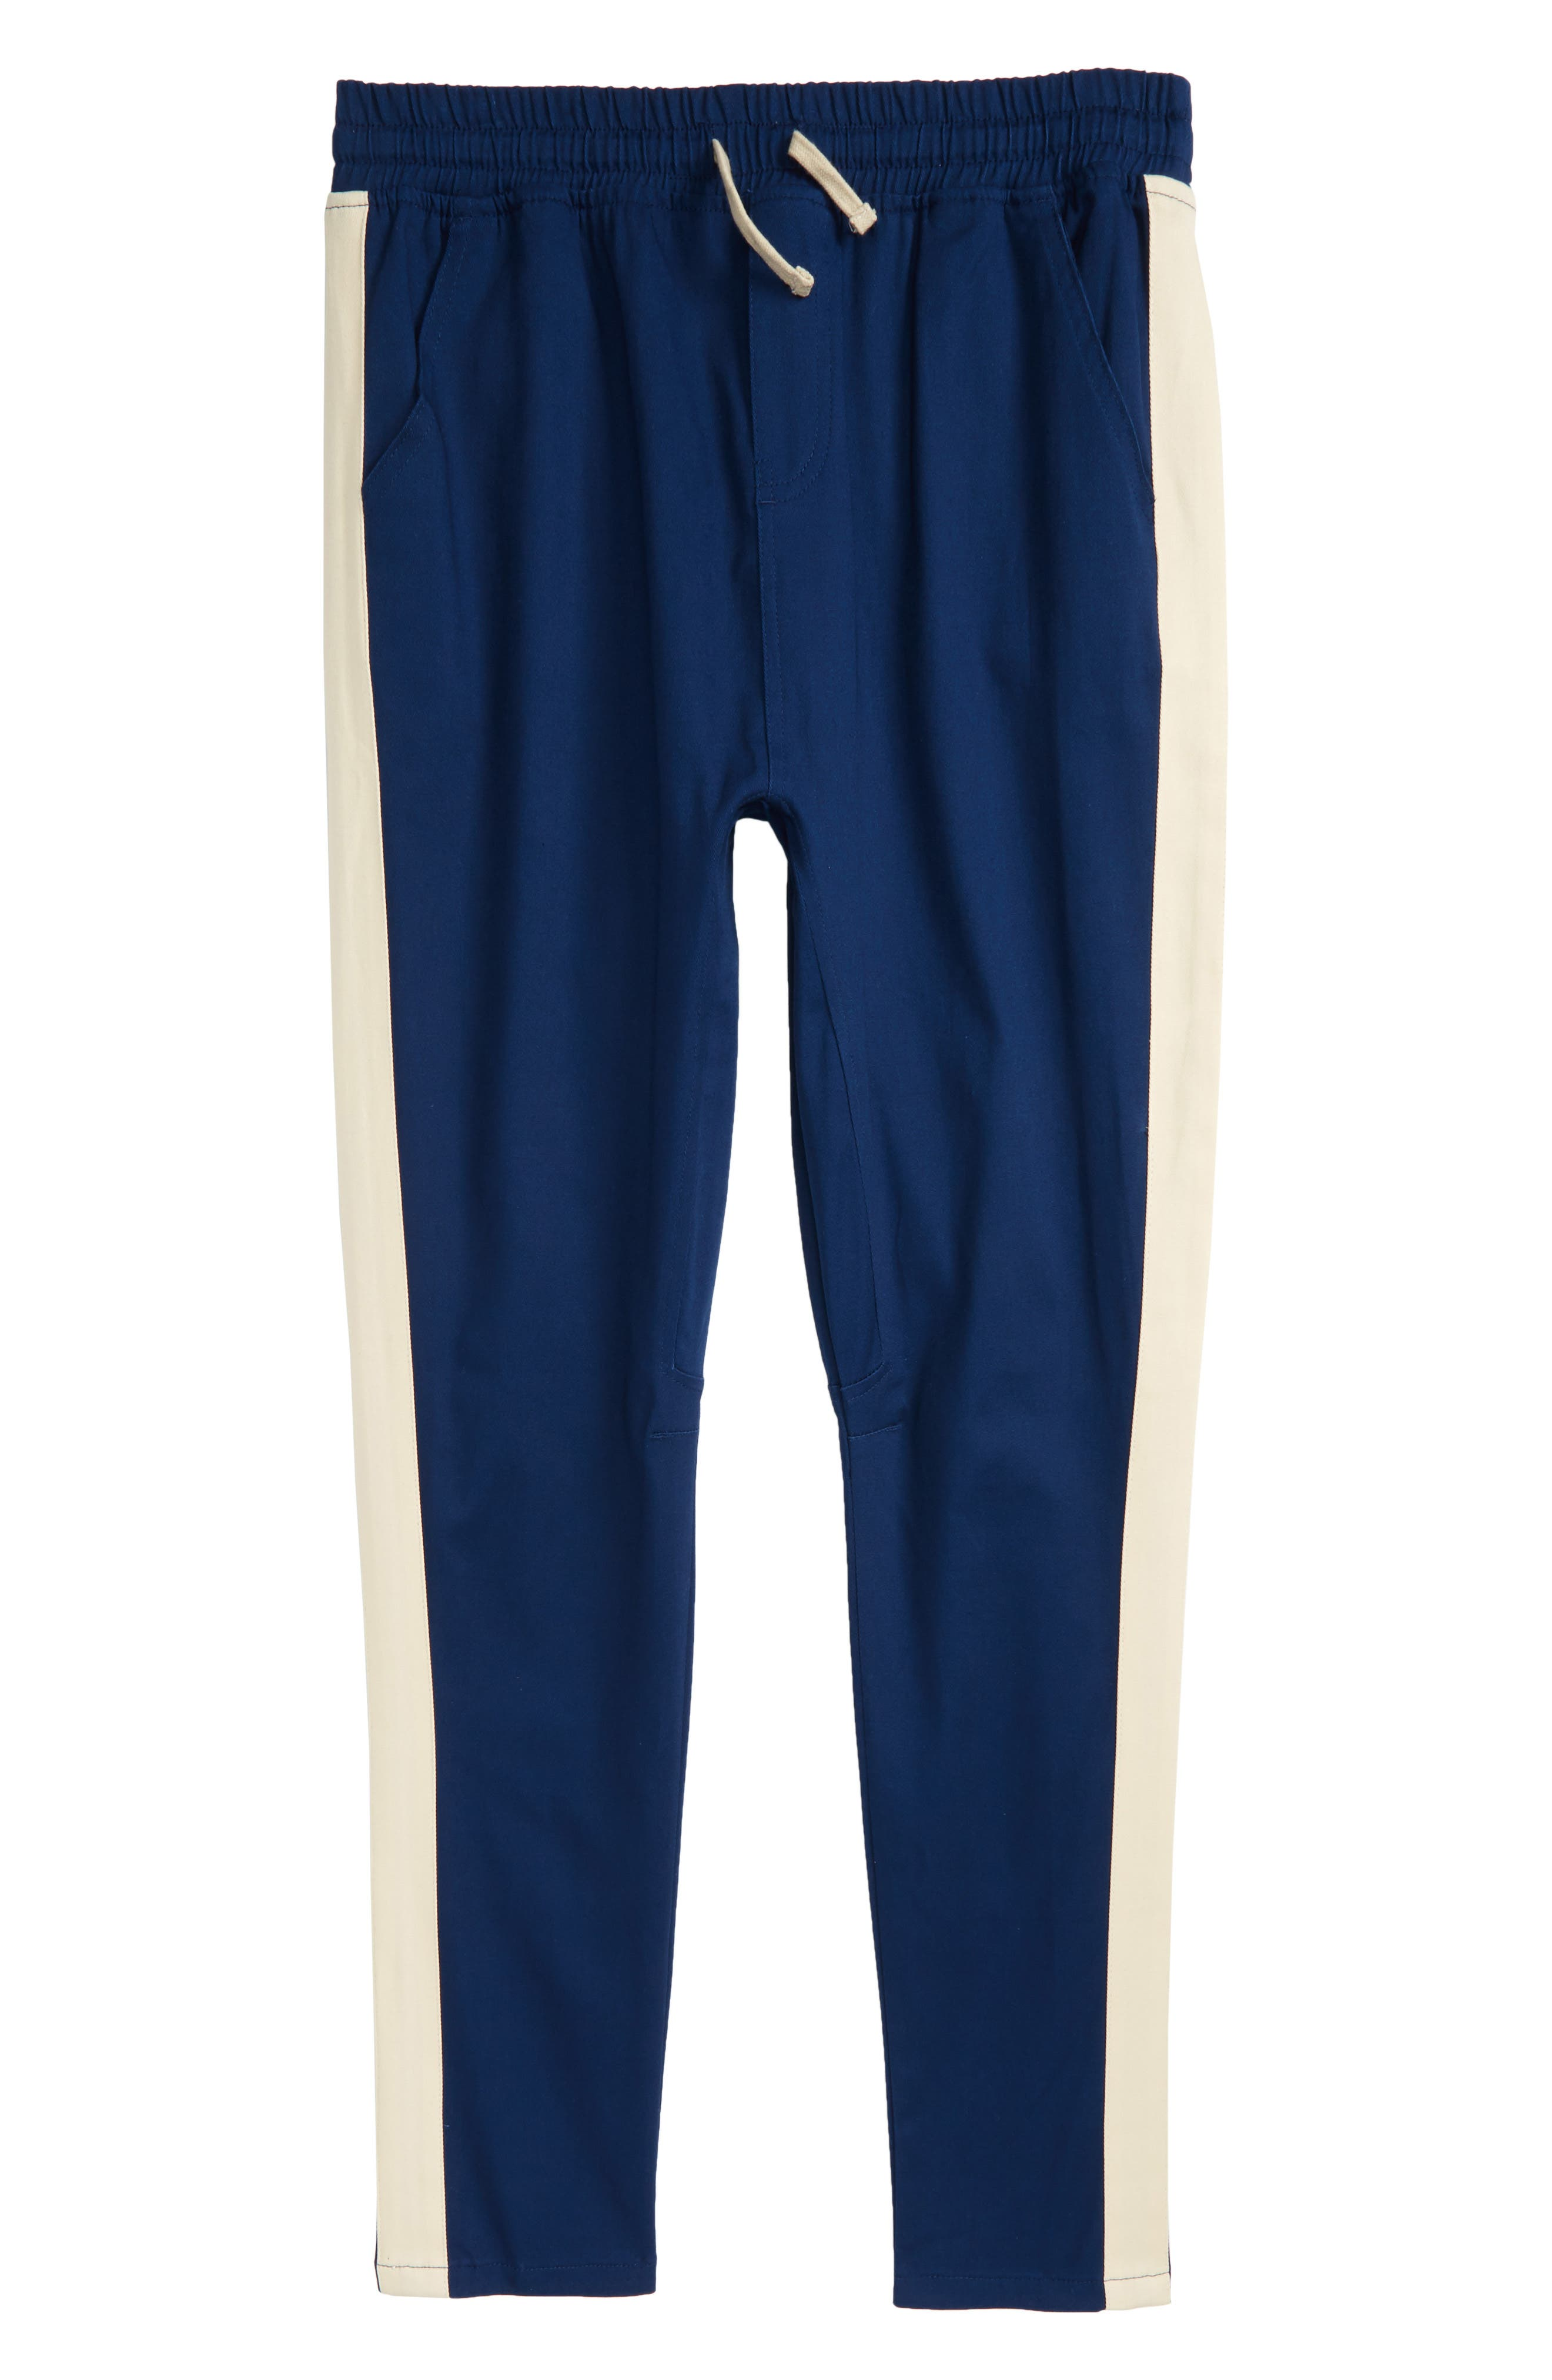 5th and Ryder Gusset Track Pants (Big Boys)